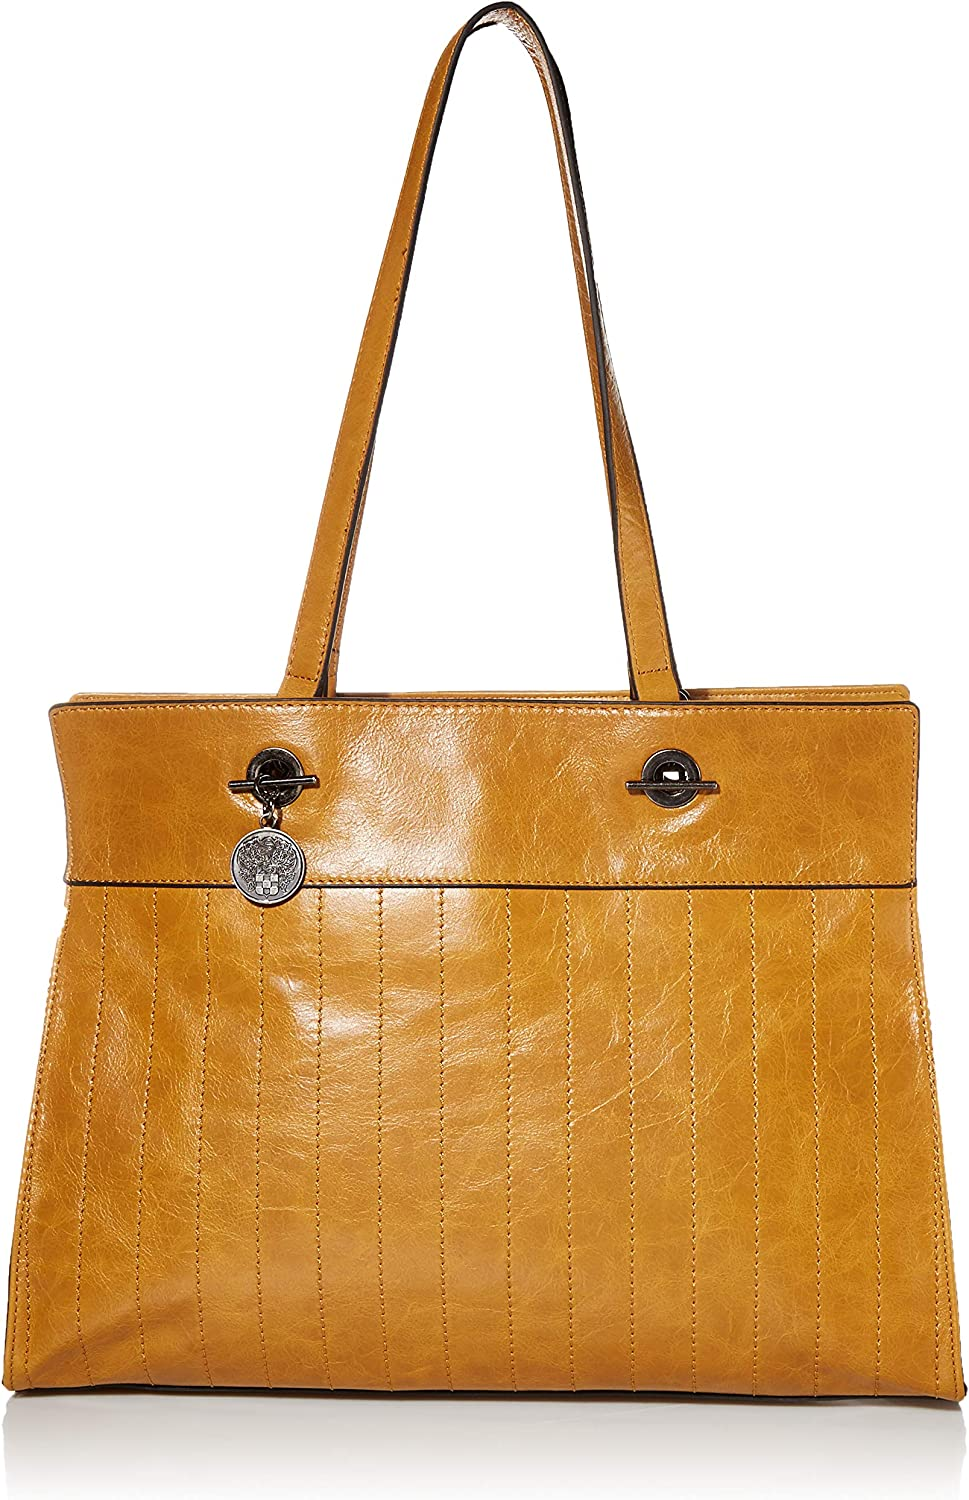 Vince Camuto Keely Tote